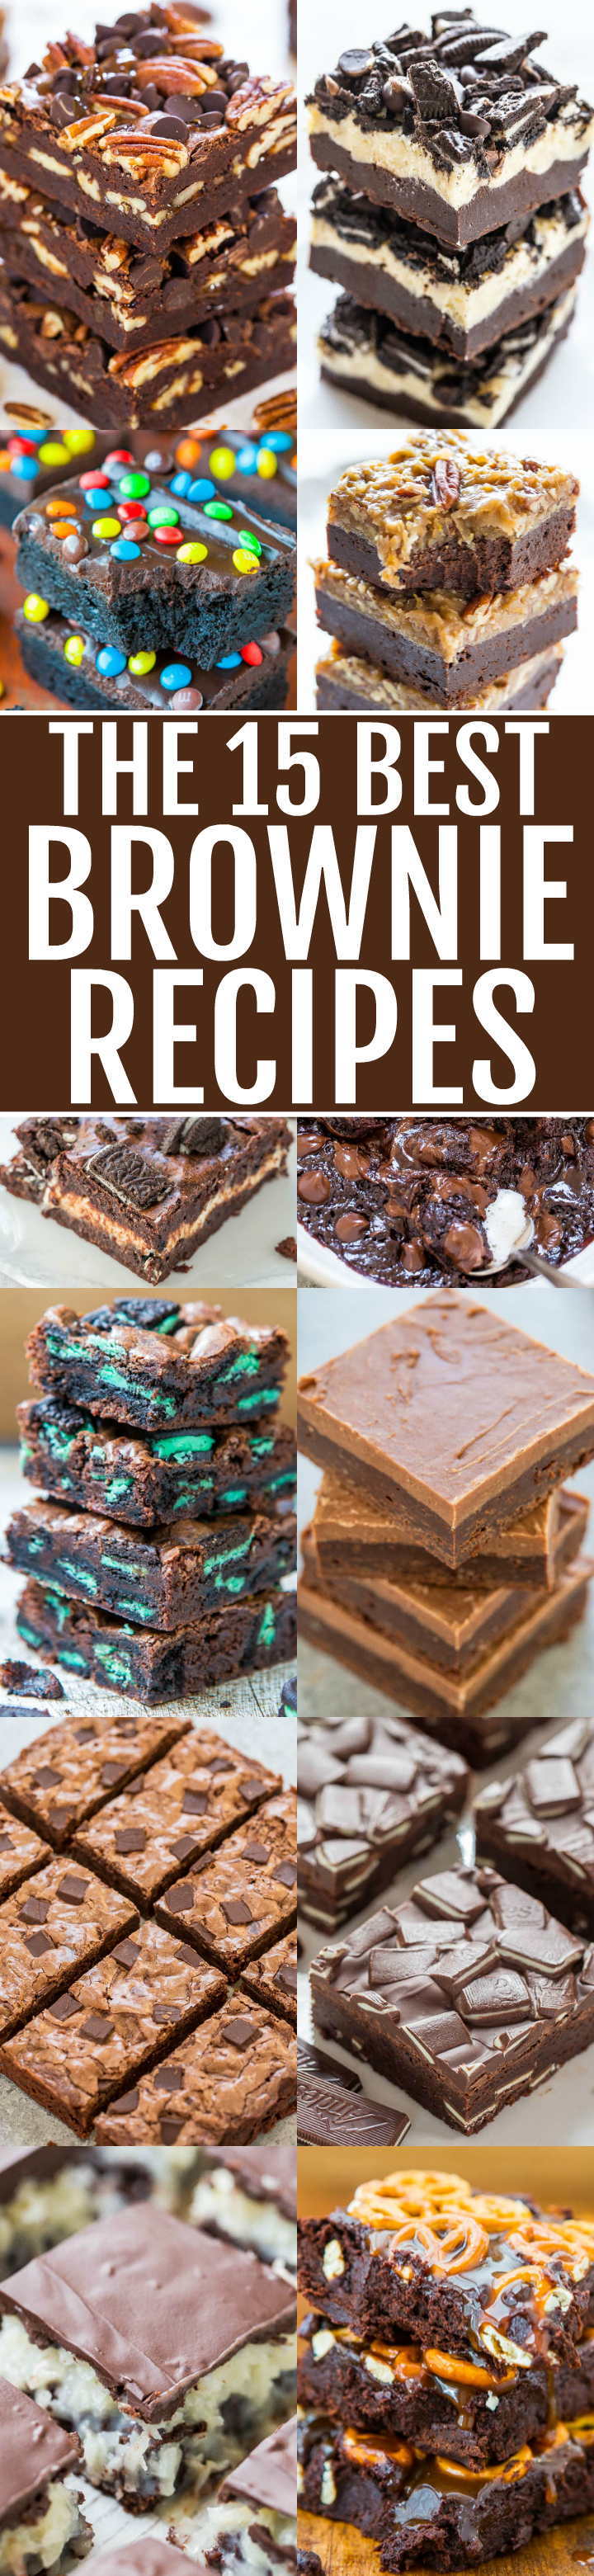 The 15 Best Brownie Recipes - The BEST 15 scratch brownie recipes that are FAST, EASY, and decadent!! If you LOVE super fudgy, rich brownies and are a chocaholic, SAVE these recipes!!